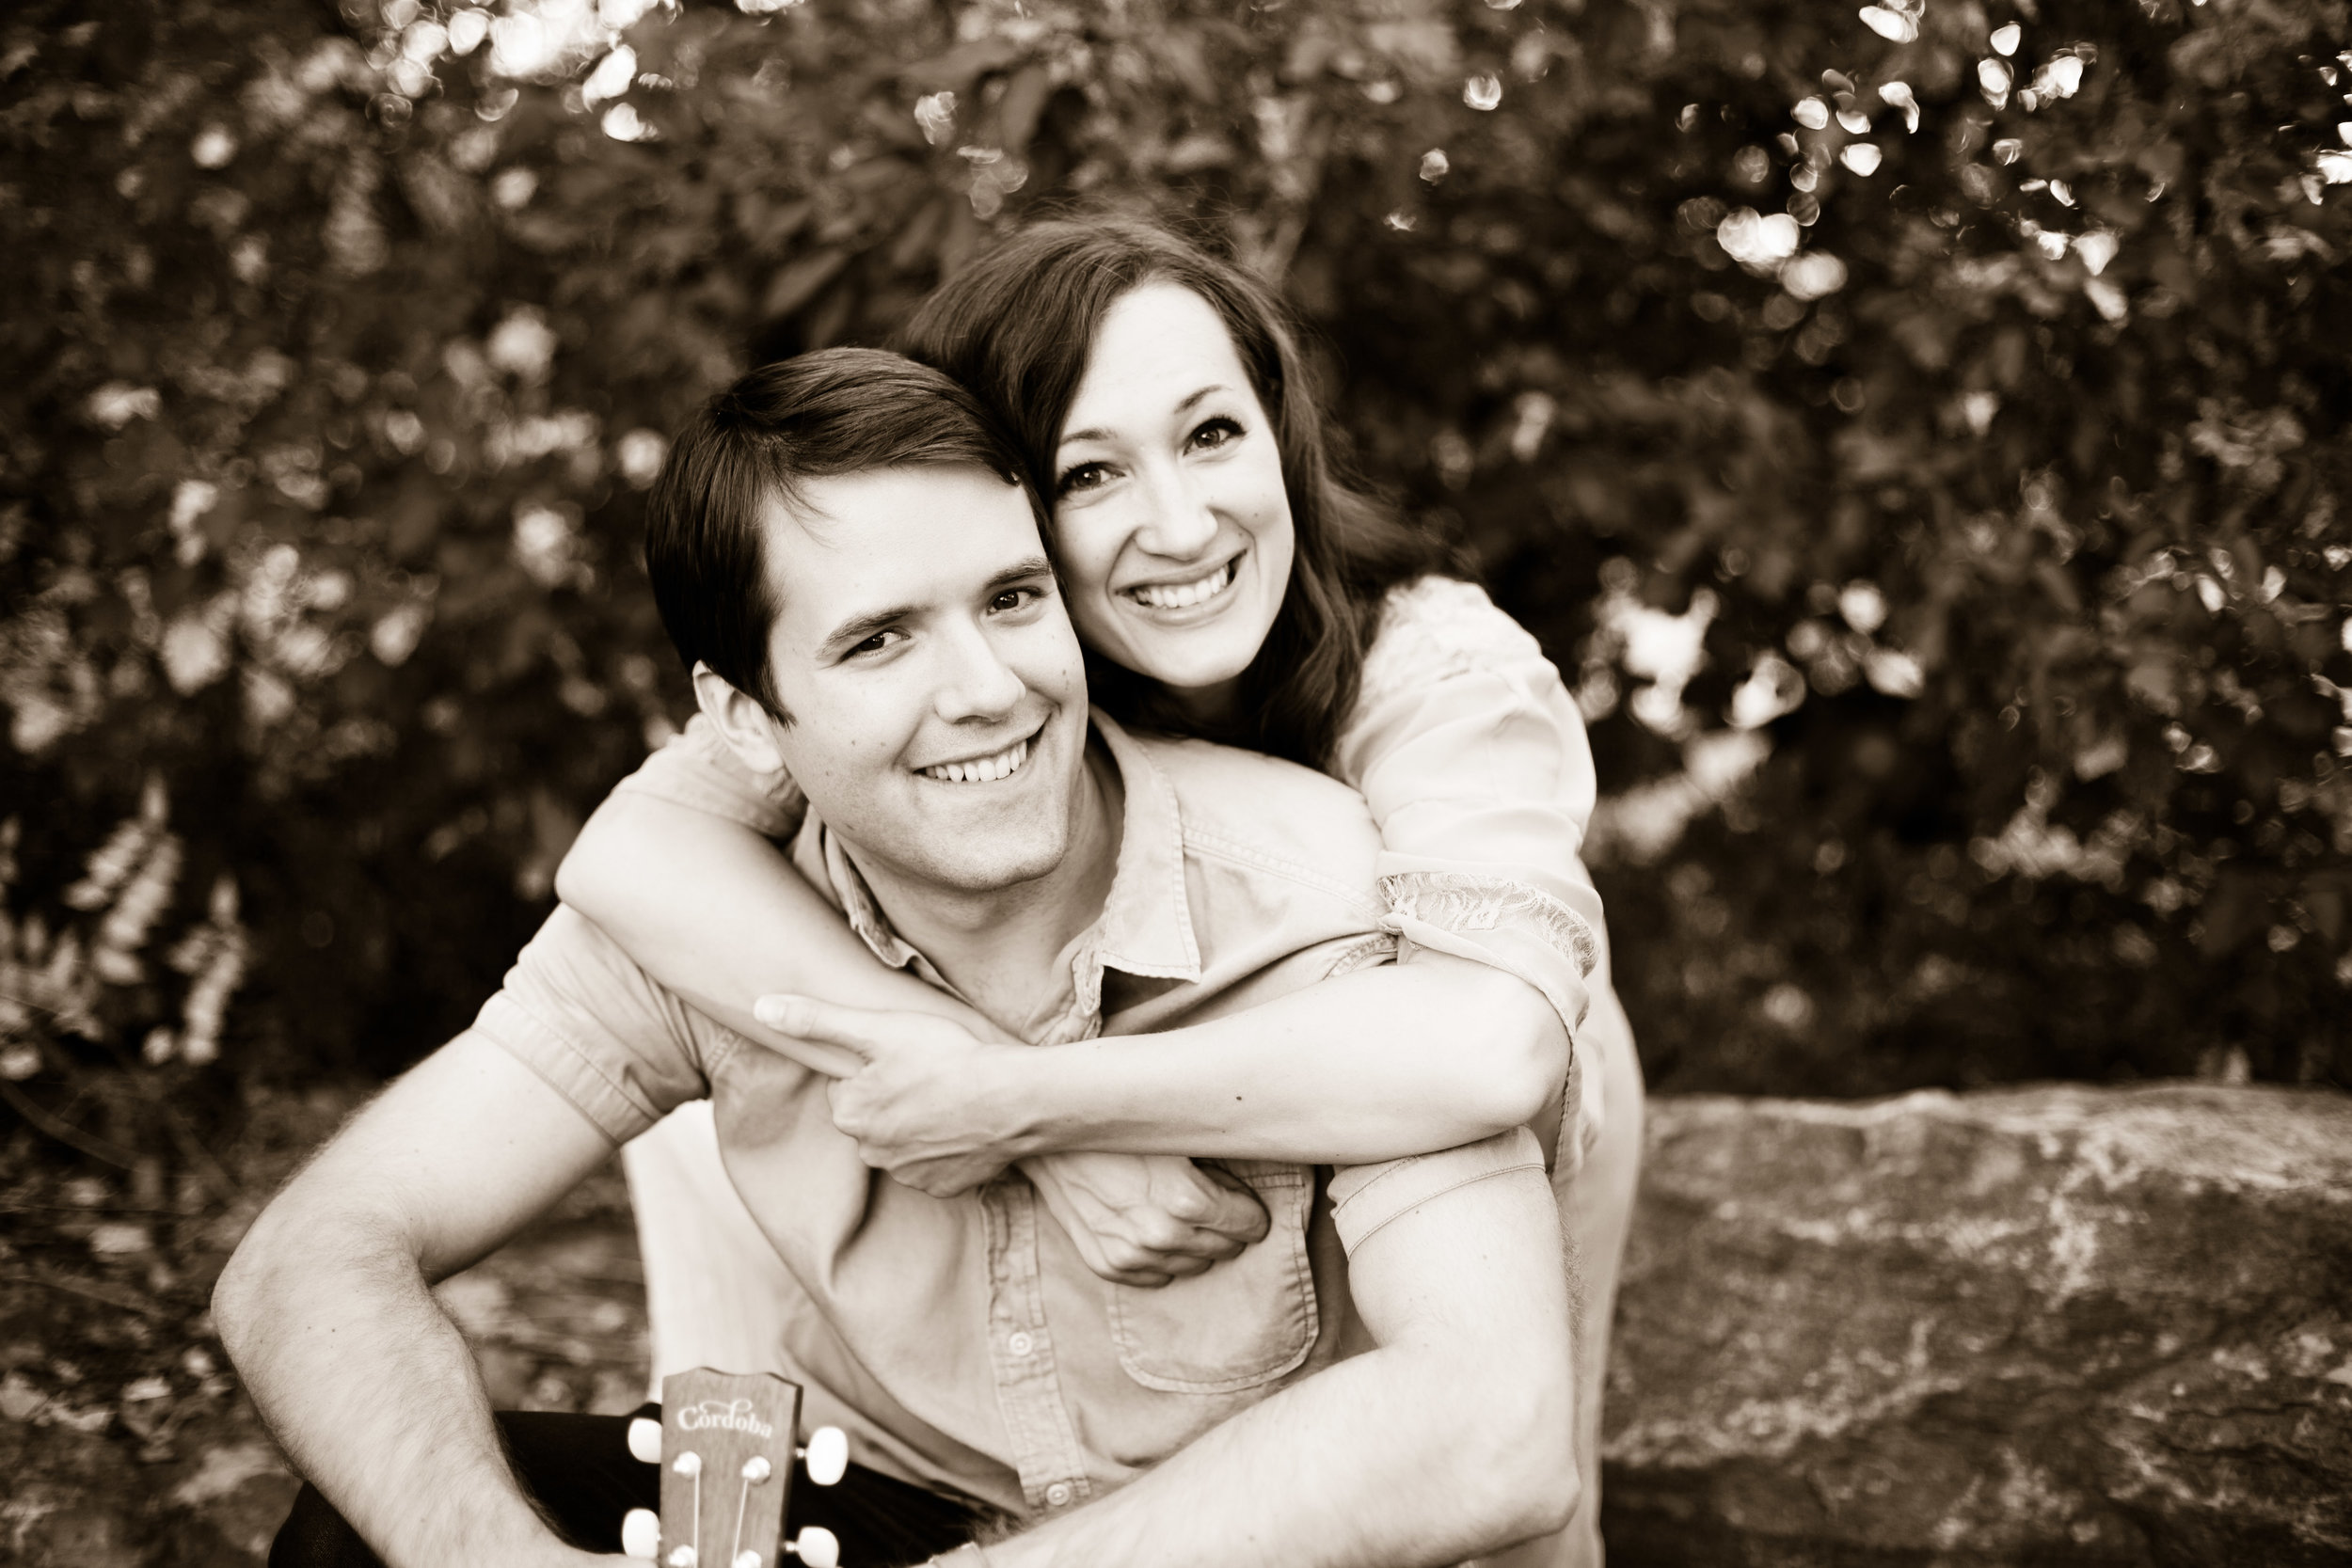 nashville musicians harvest sound artists austin and courtney couple/anniversary photographer in nashville